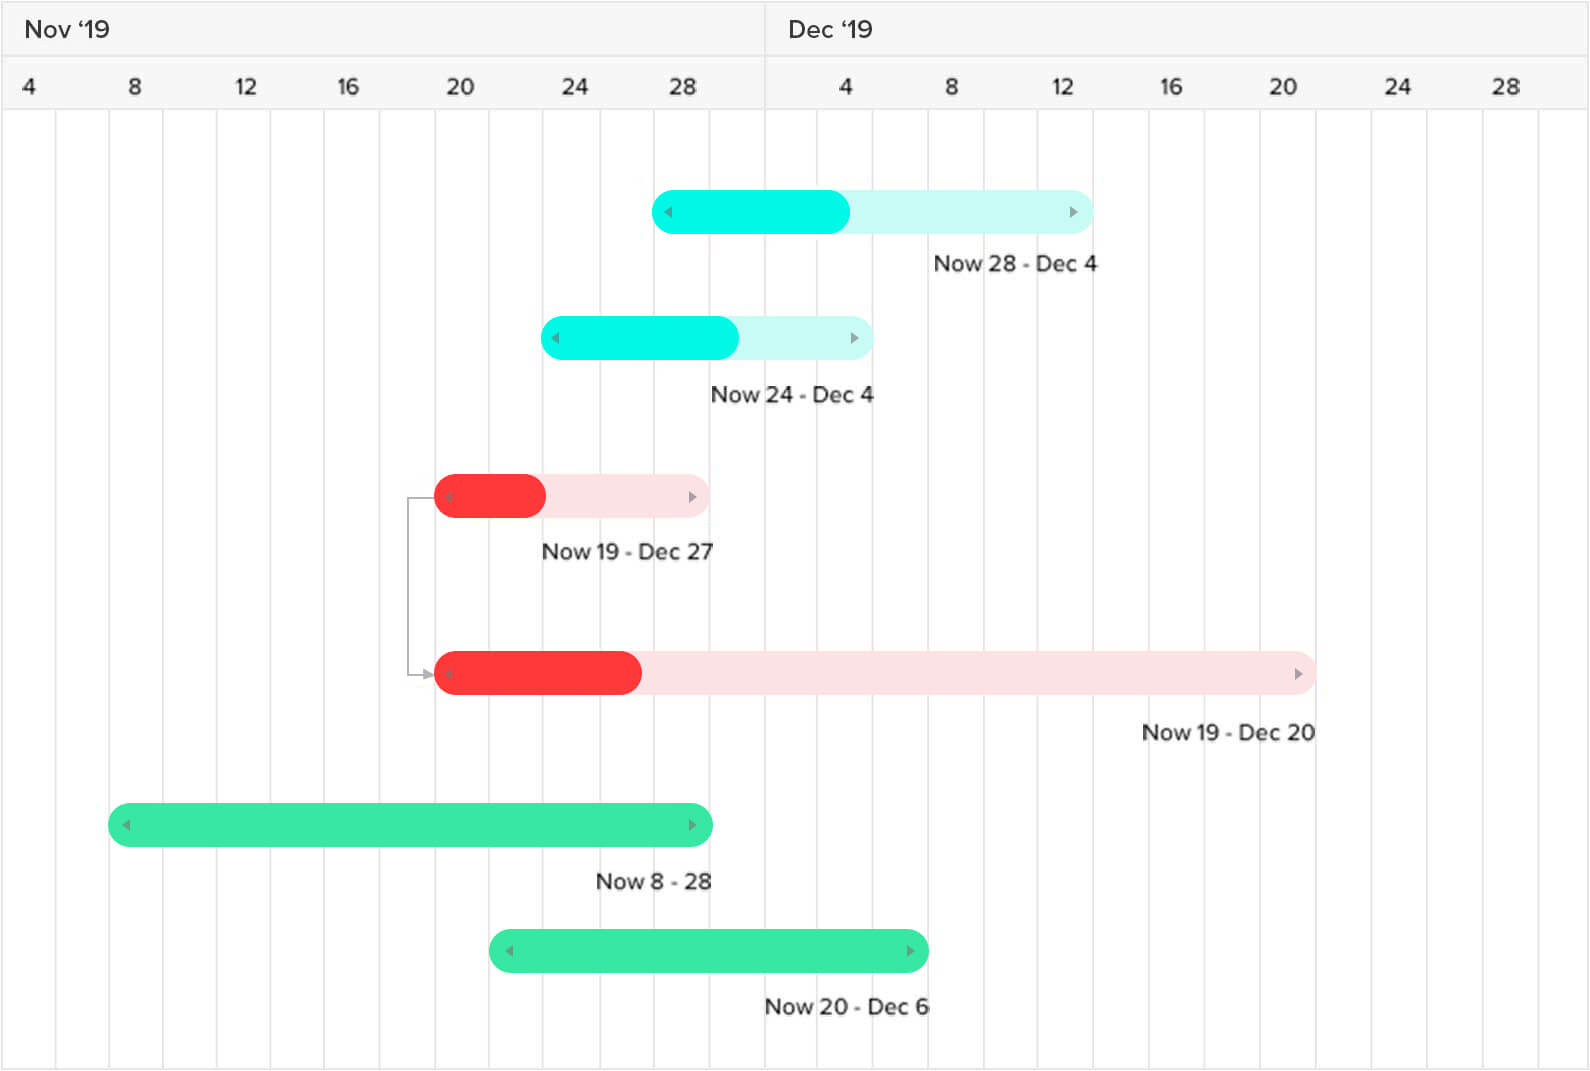 Get the big picture with Gantt charts